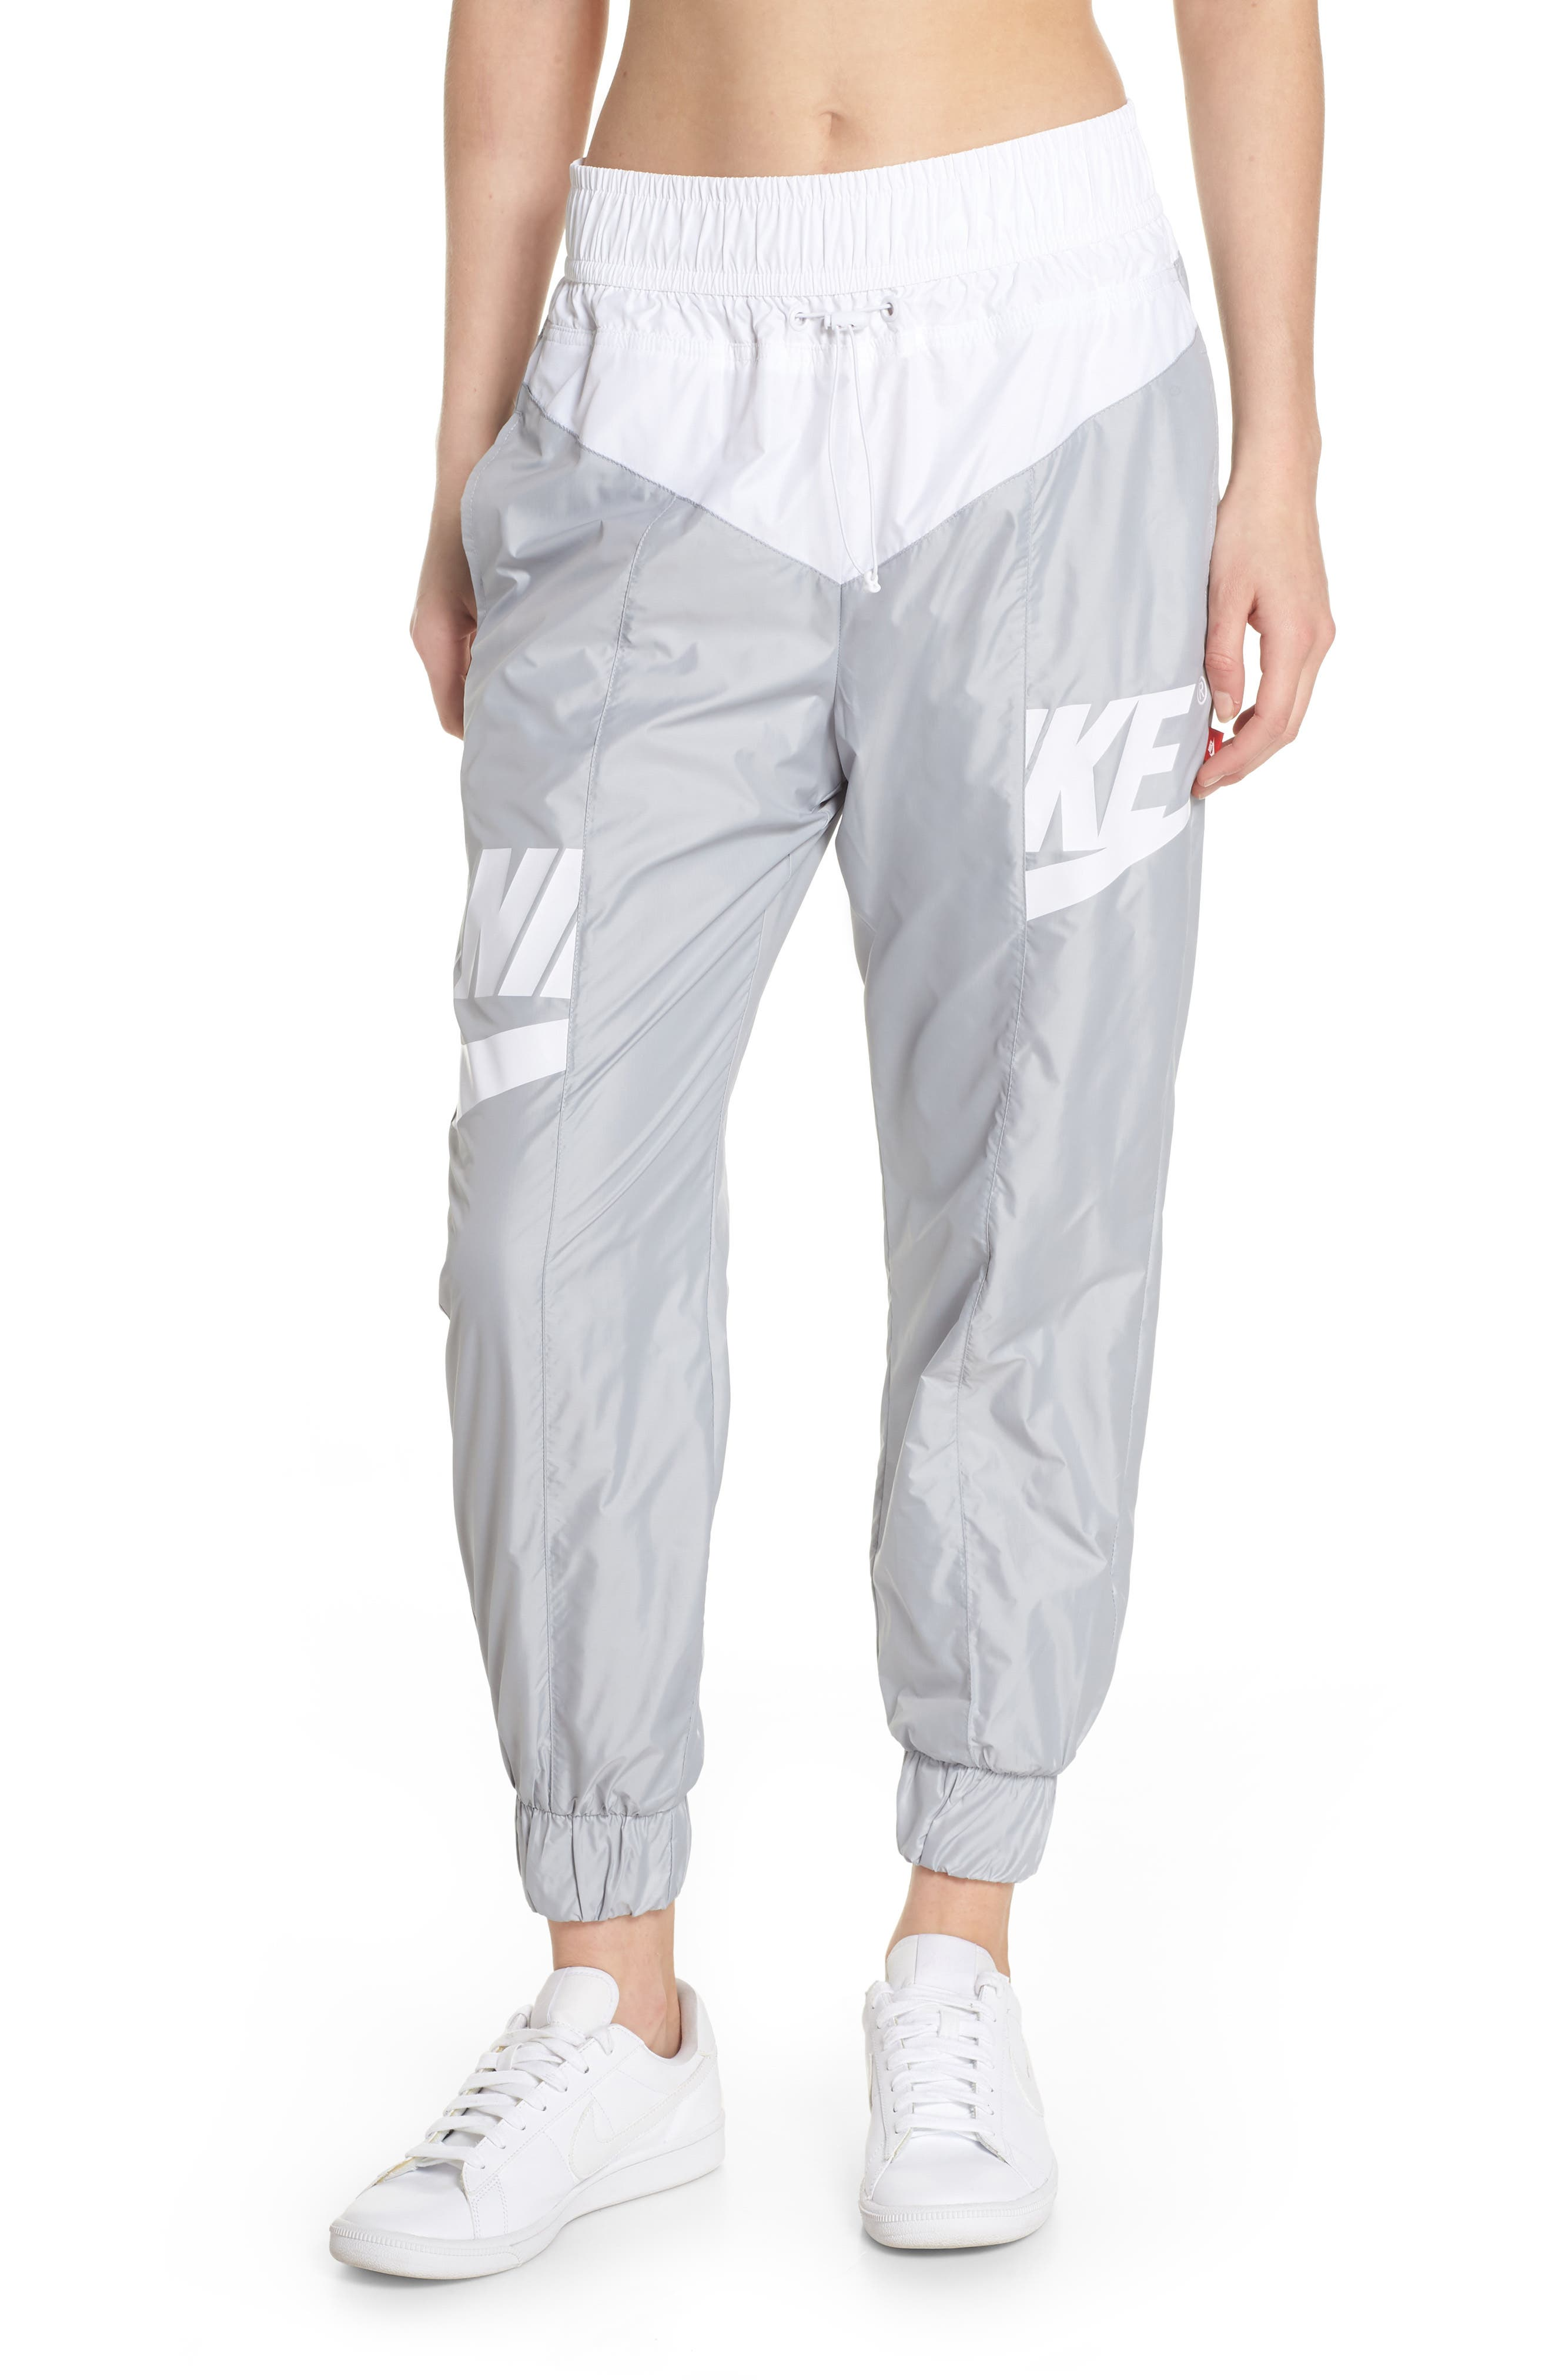 Sportswear Windrunner pants,                         Main,                         color, Wolf Grey/ Summit White